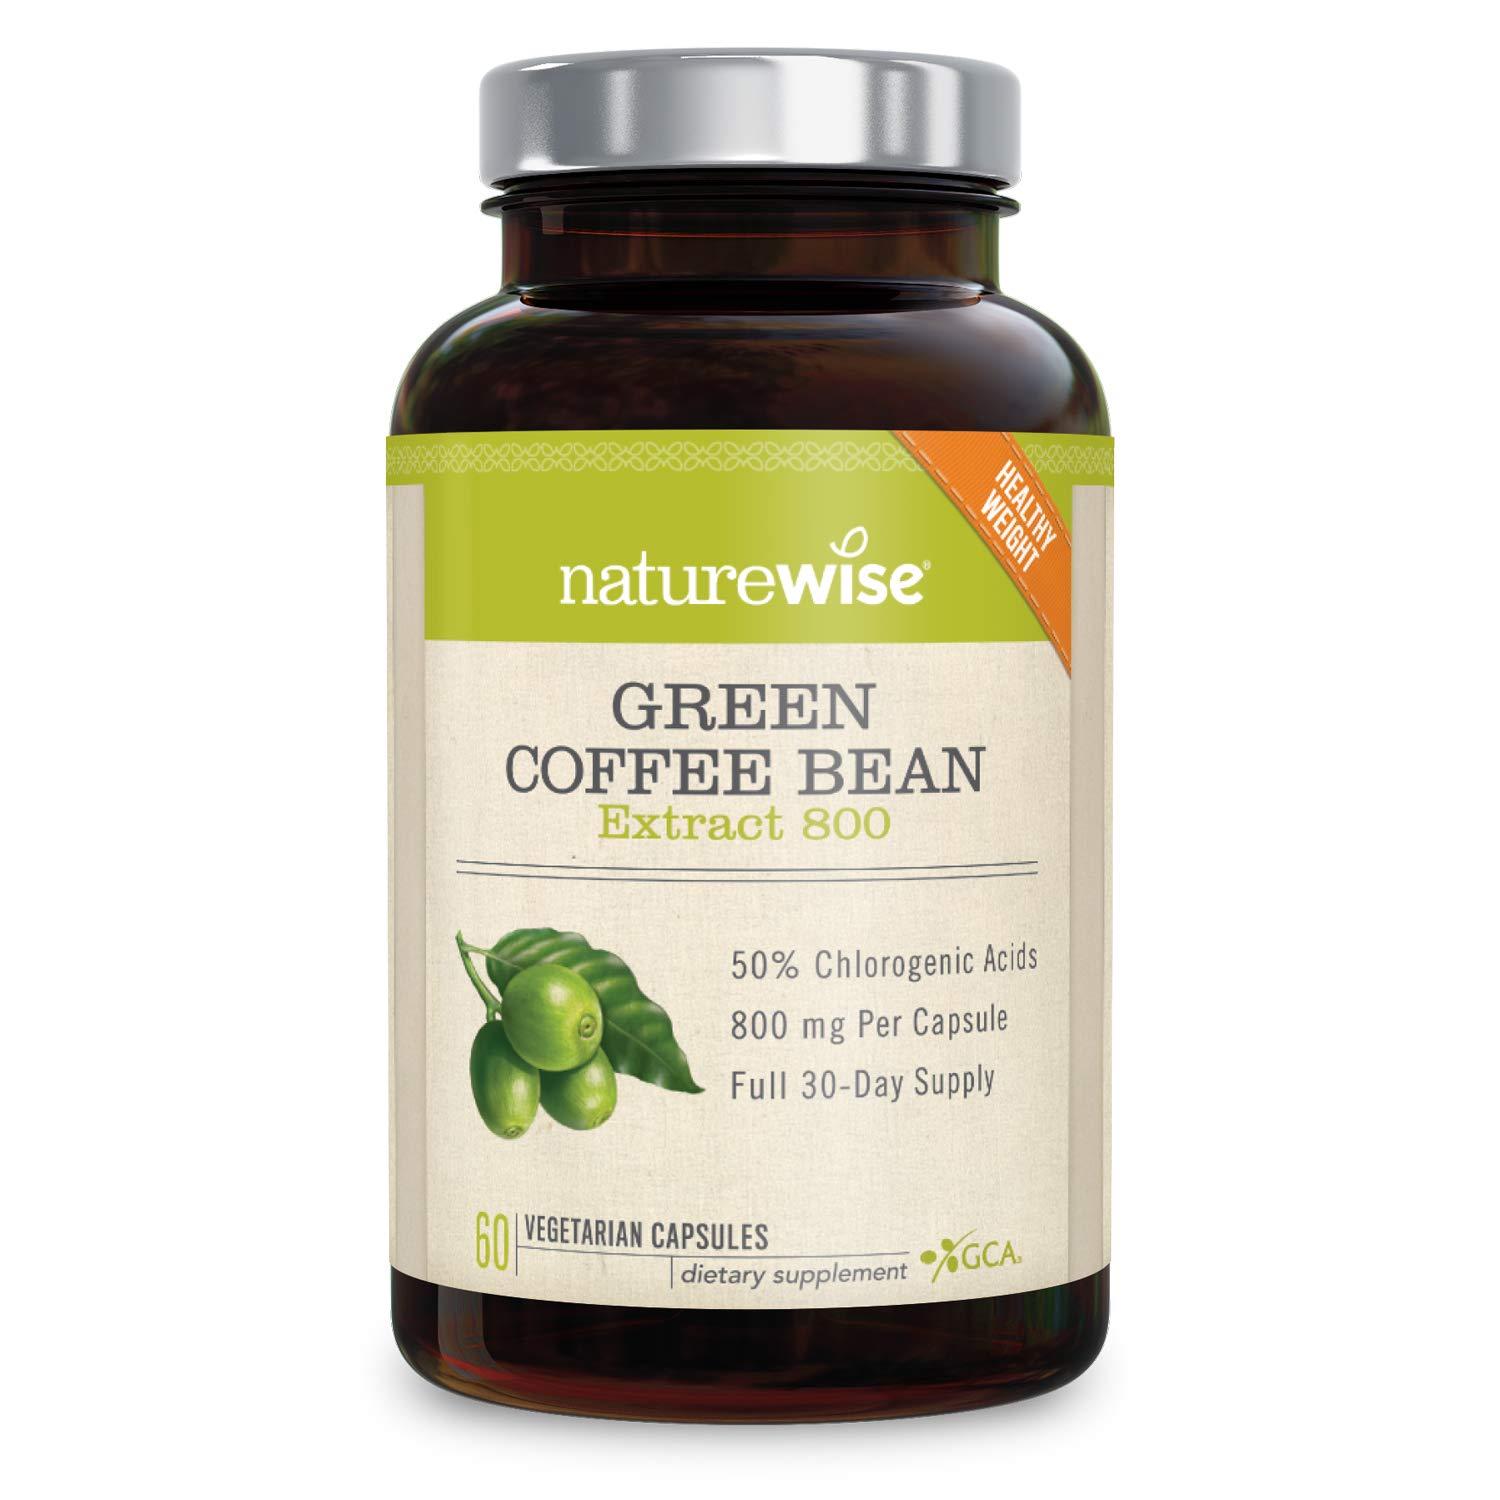 NatureWise Green Coffee Bean 800mg Max Potency Extract 50% Chlorogenic Acids | Raw Green Coffee Antioxidant Supplement & Metabolism Booster for Weight Loss | Non-GMO, Vegan, Gluten-Free [2 Month] by NatureWise (Image #1)